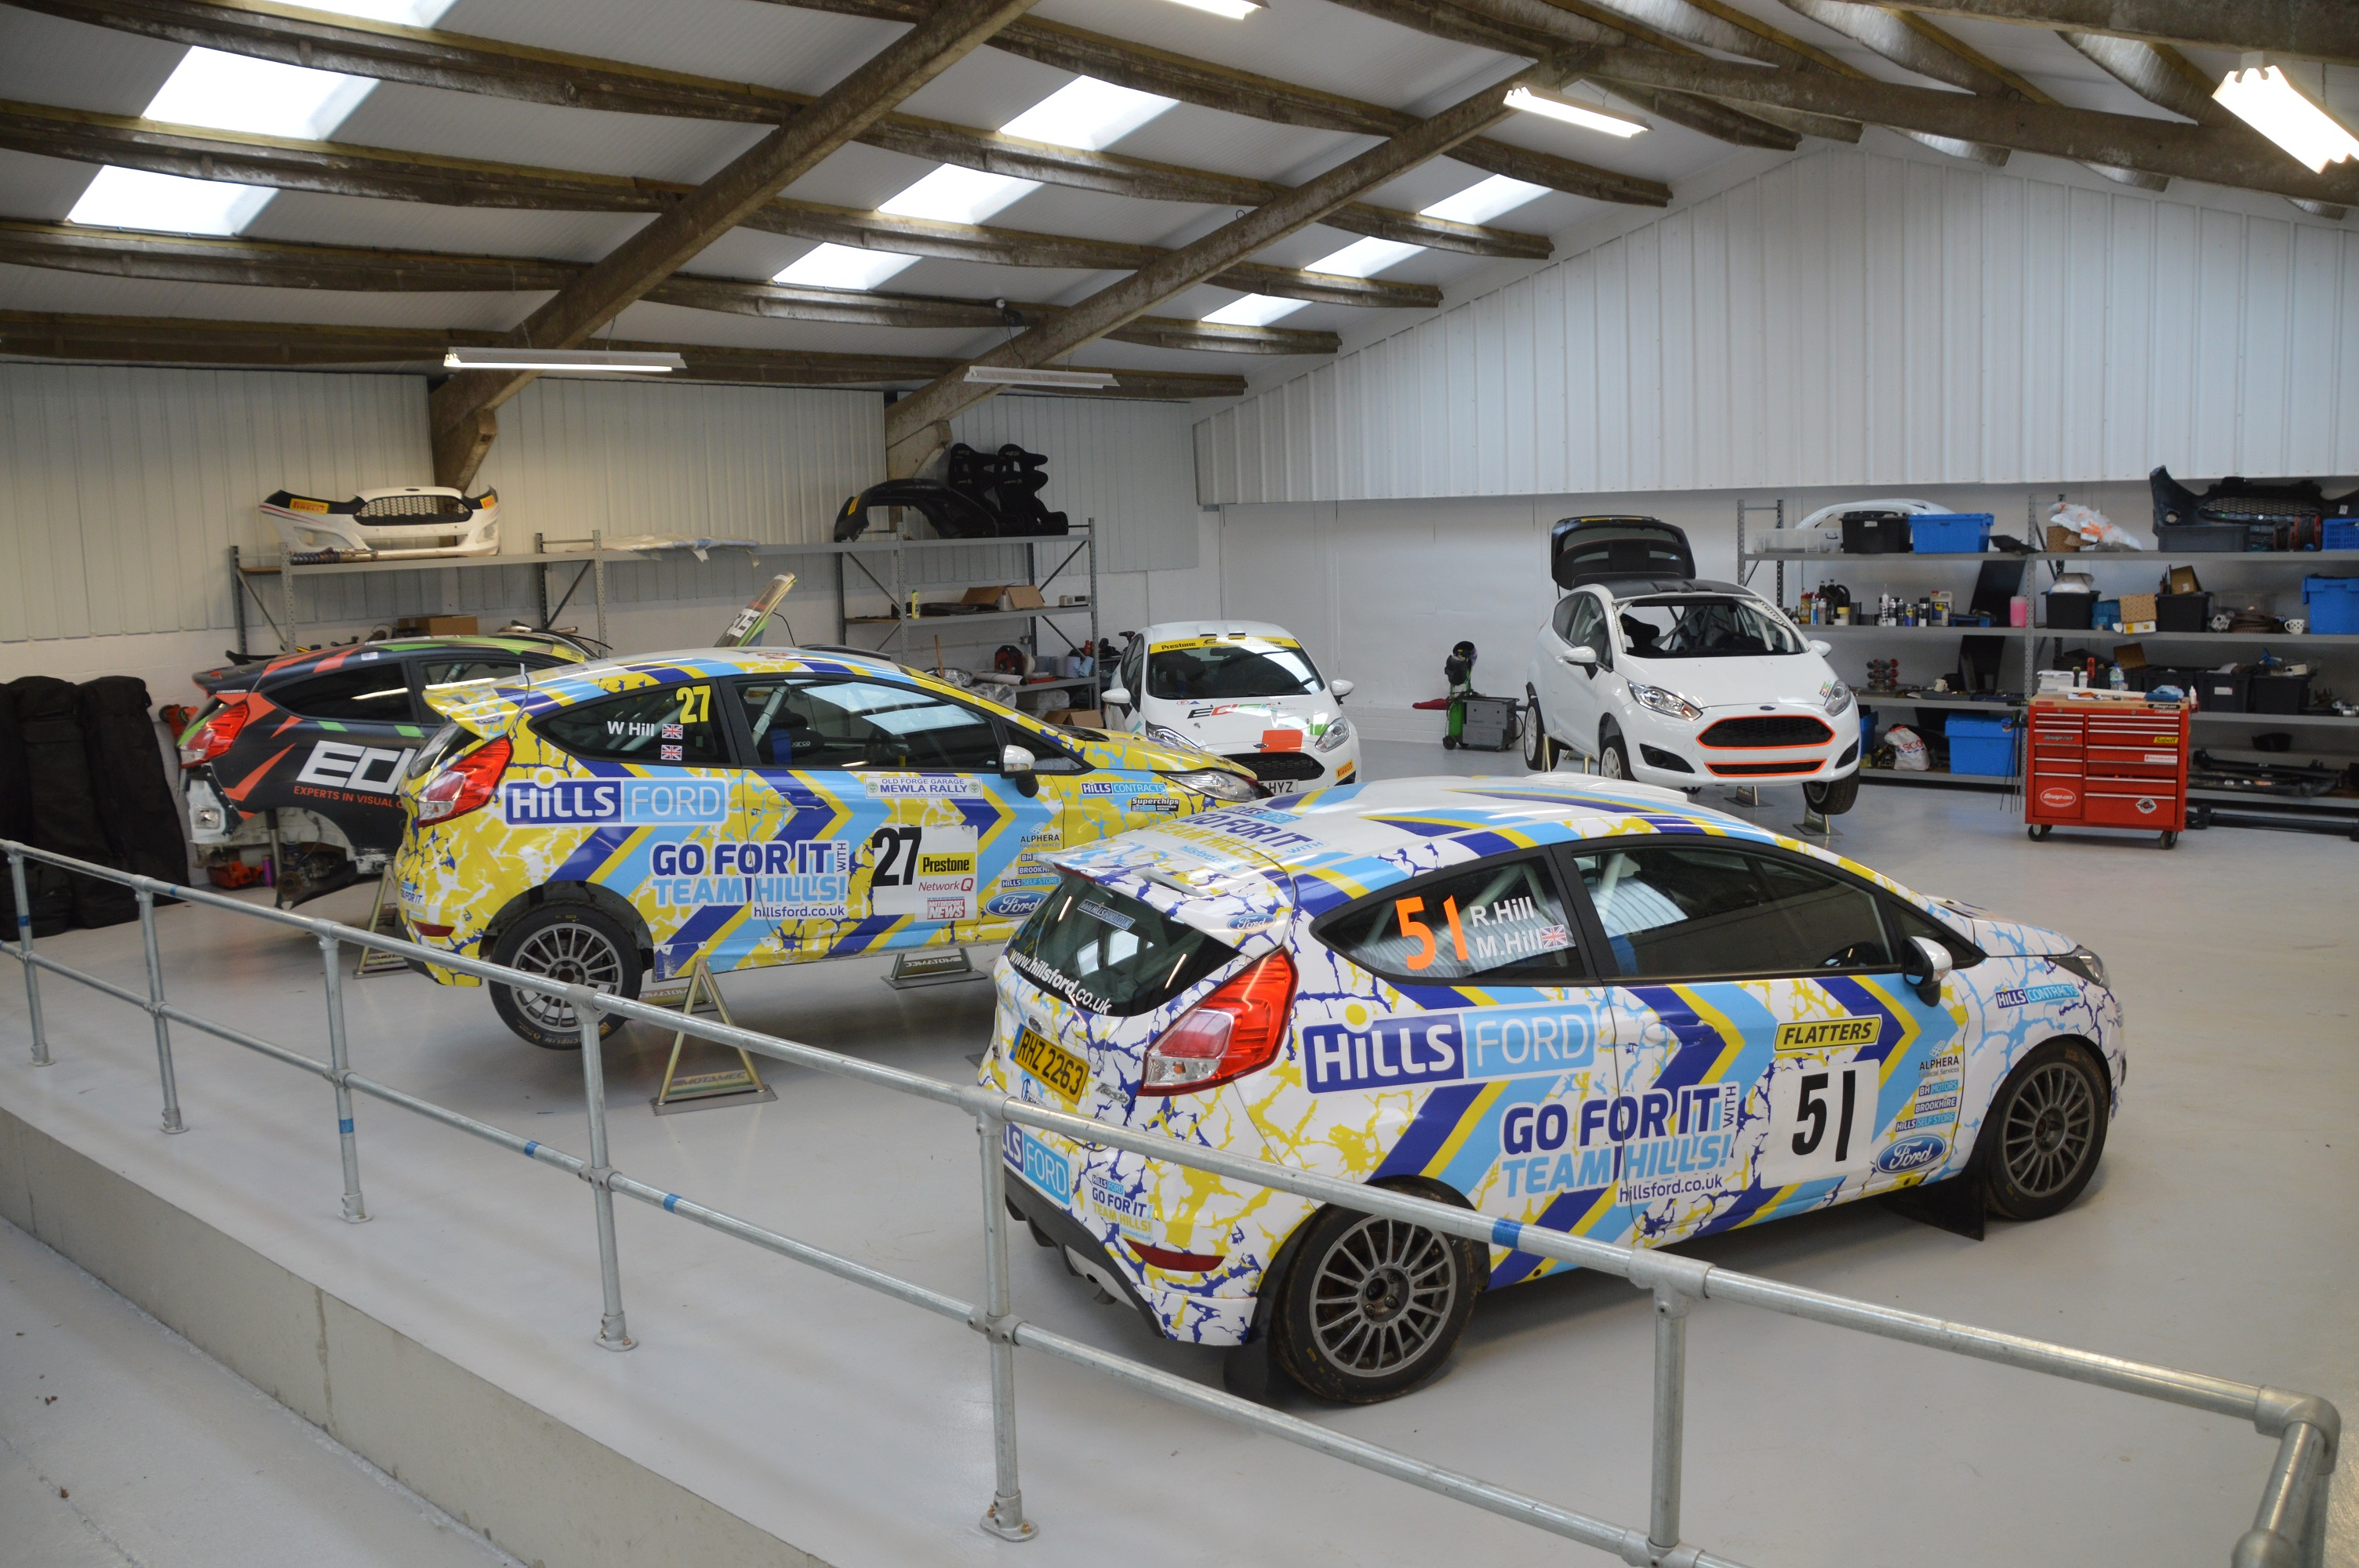 Edsl Sport Become Official Uk Ford Fiesta R2 Reseller 90right Uk Rallying